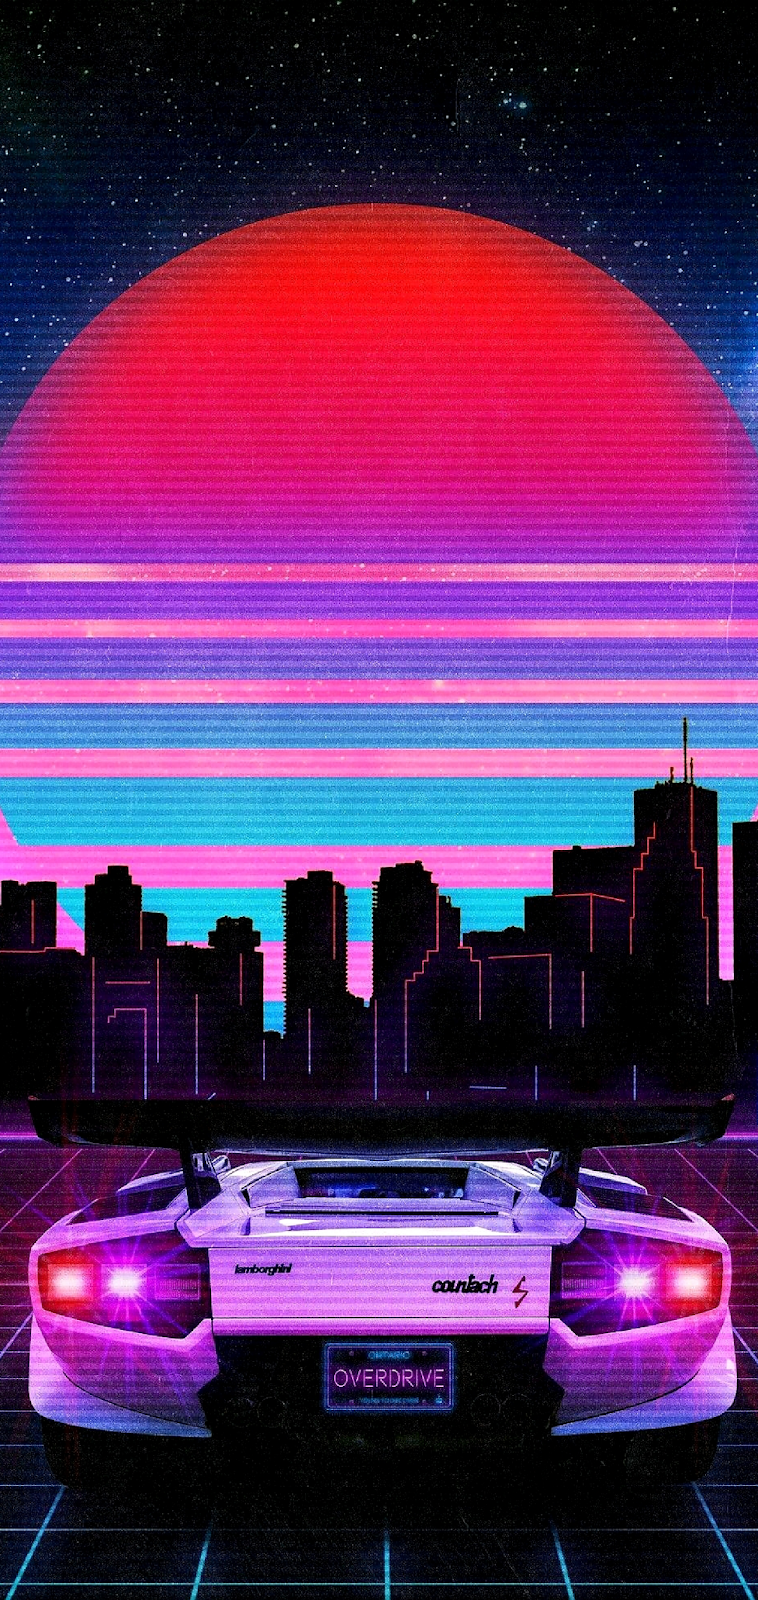 AESTHETIC VAPORWAVE PHONE WALLPAPER COLLECTION 192